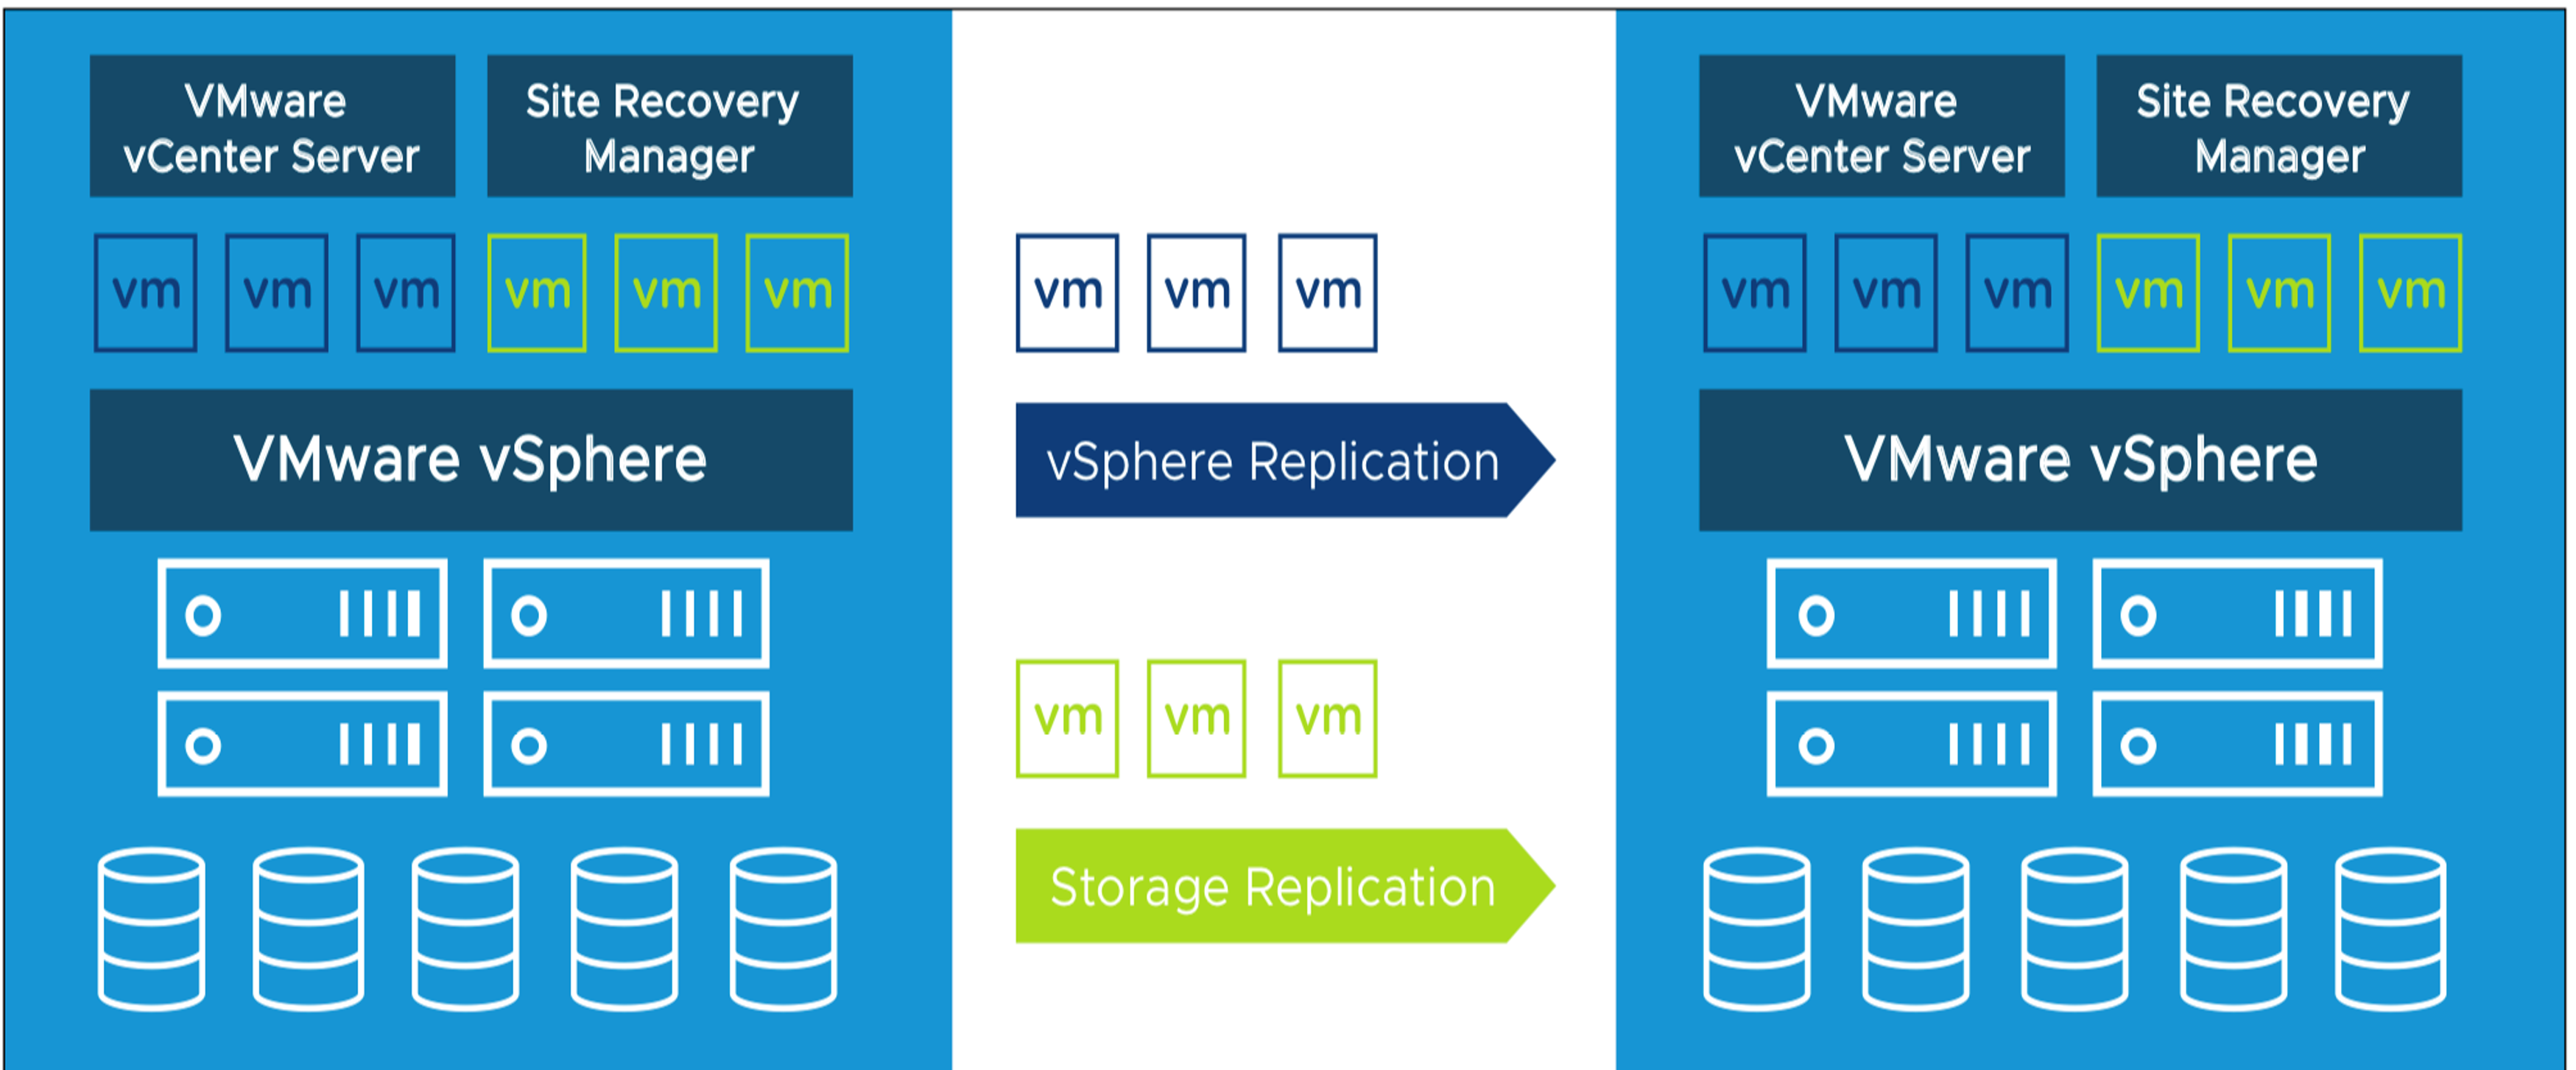 VMware Site Recovery Manager and VMware vSphere Replication